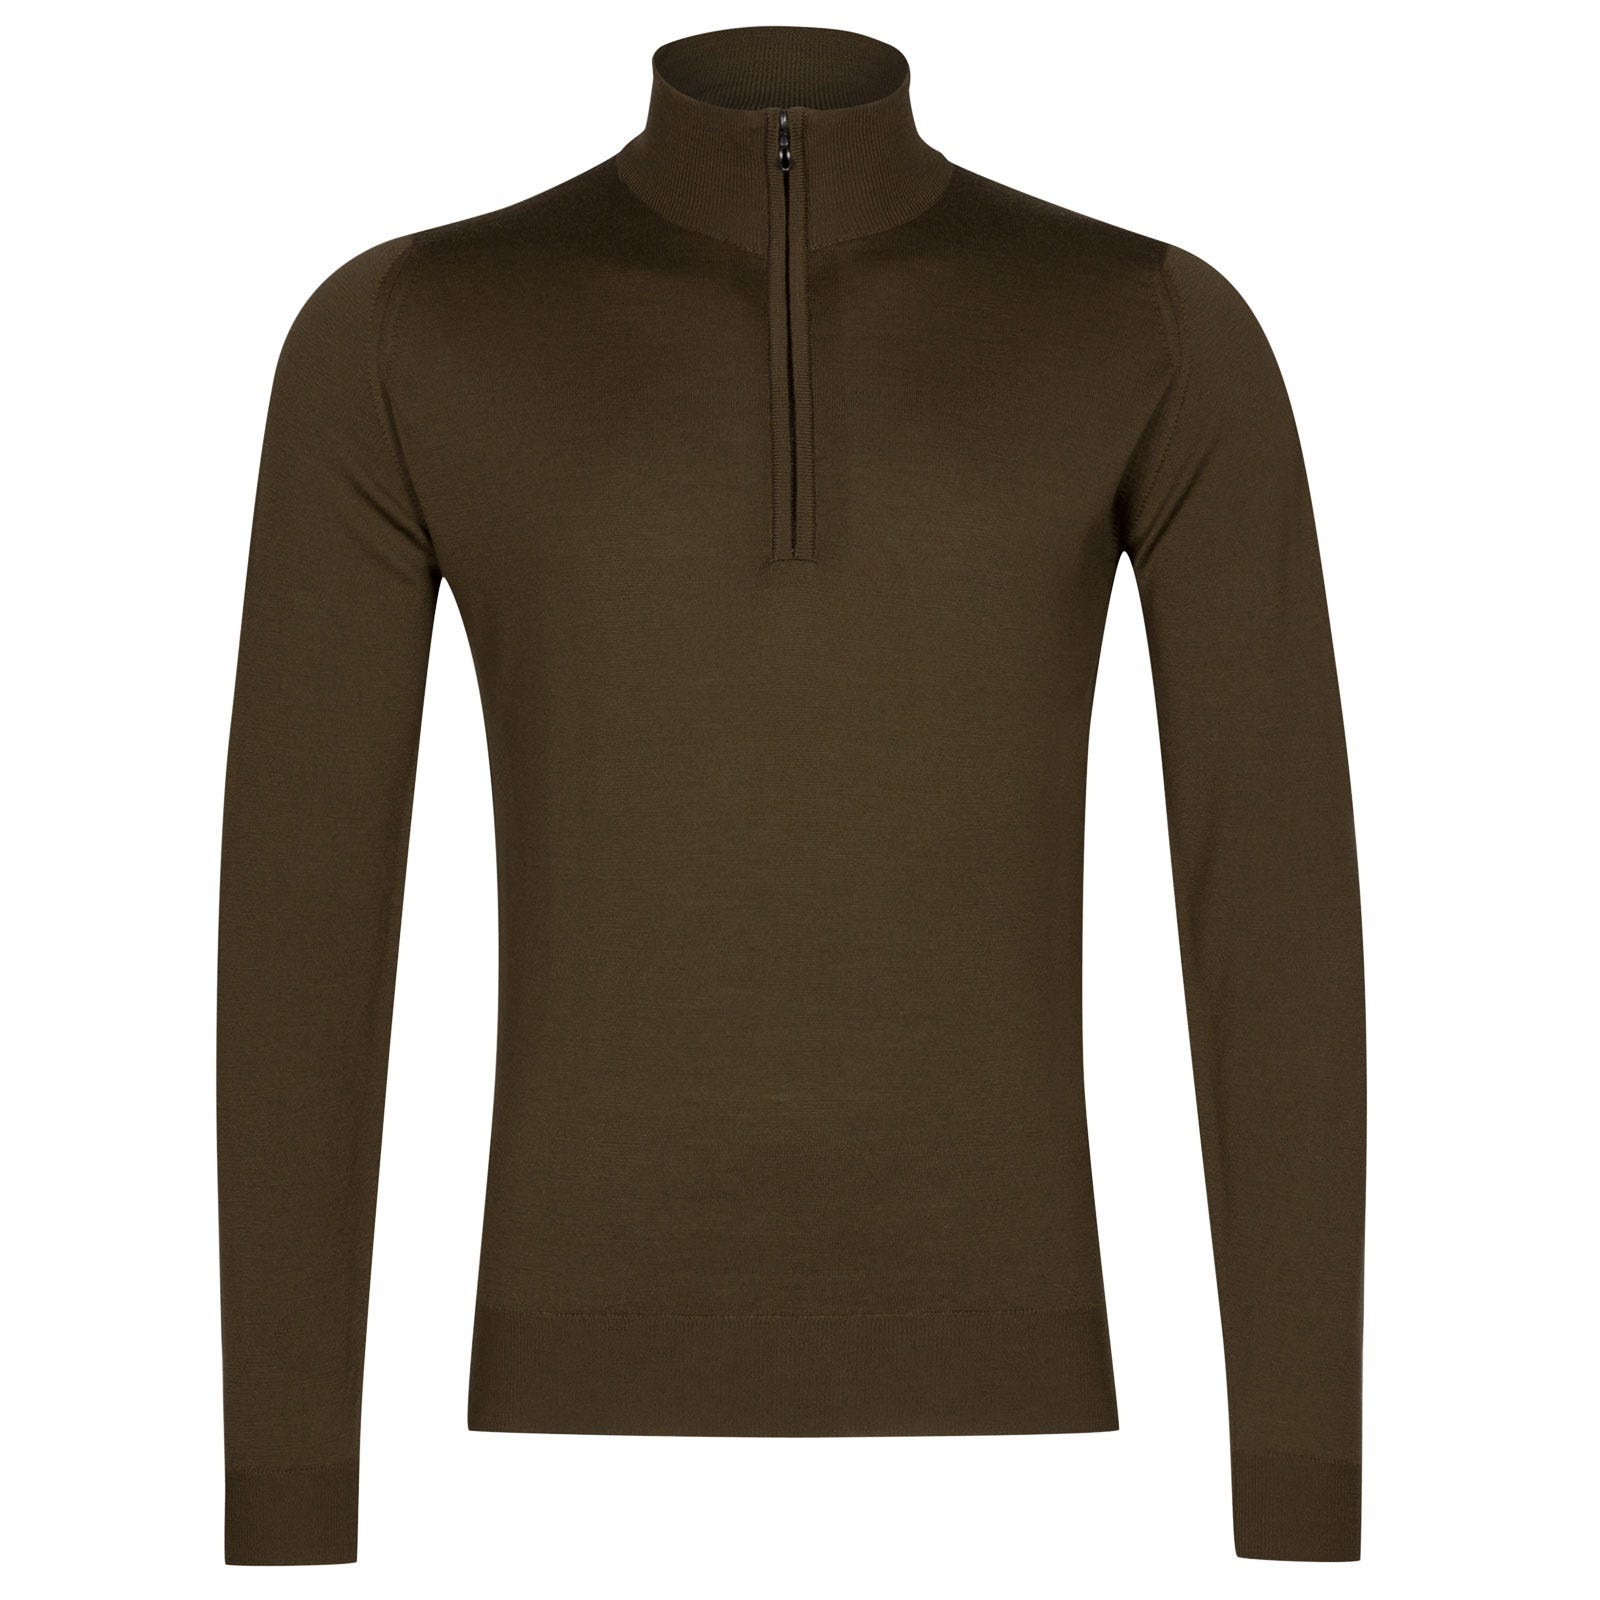 John Smedley Barrow Merino Wool Pullover in Kielder Green-M